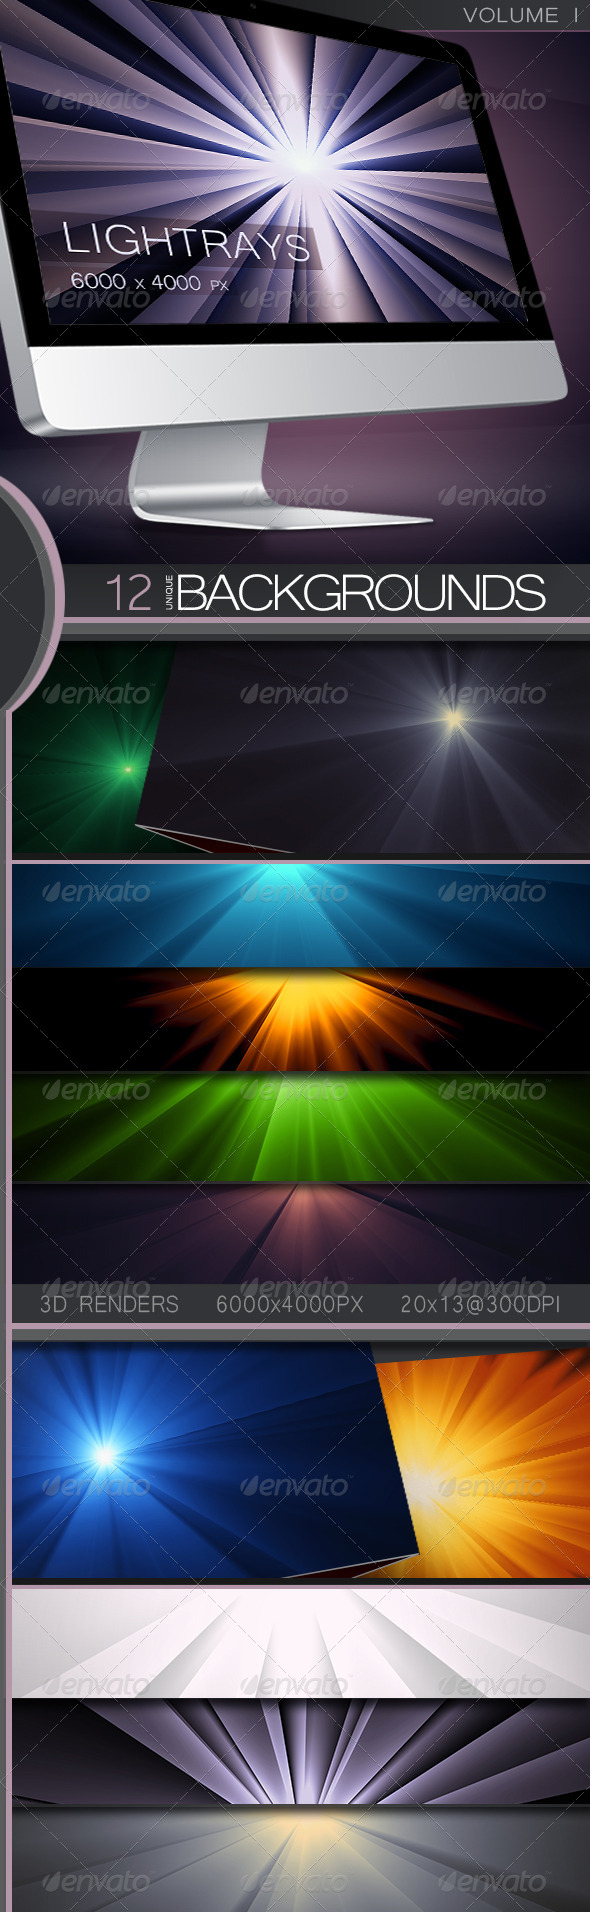 GraphicRiver 3D LightRay Backgrounds Volume 1 5256638